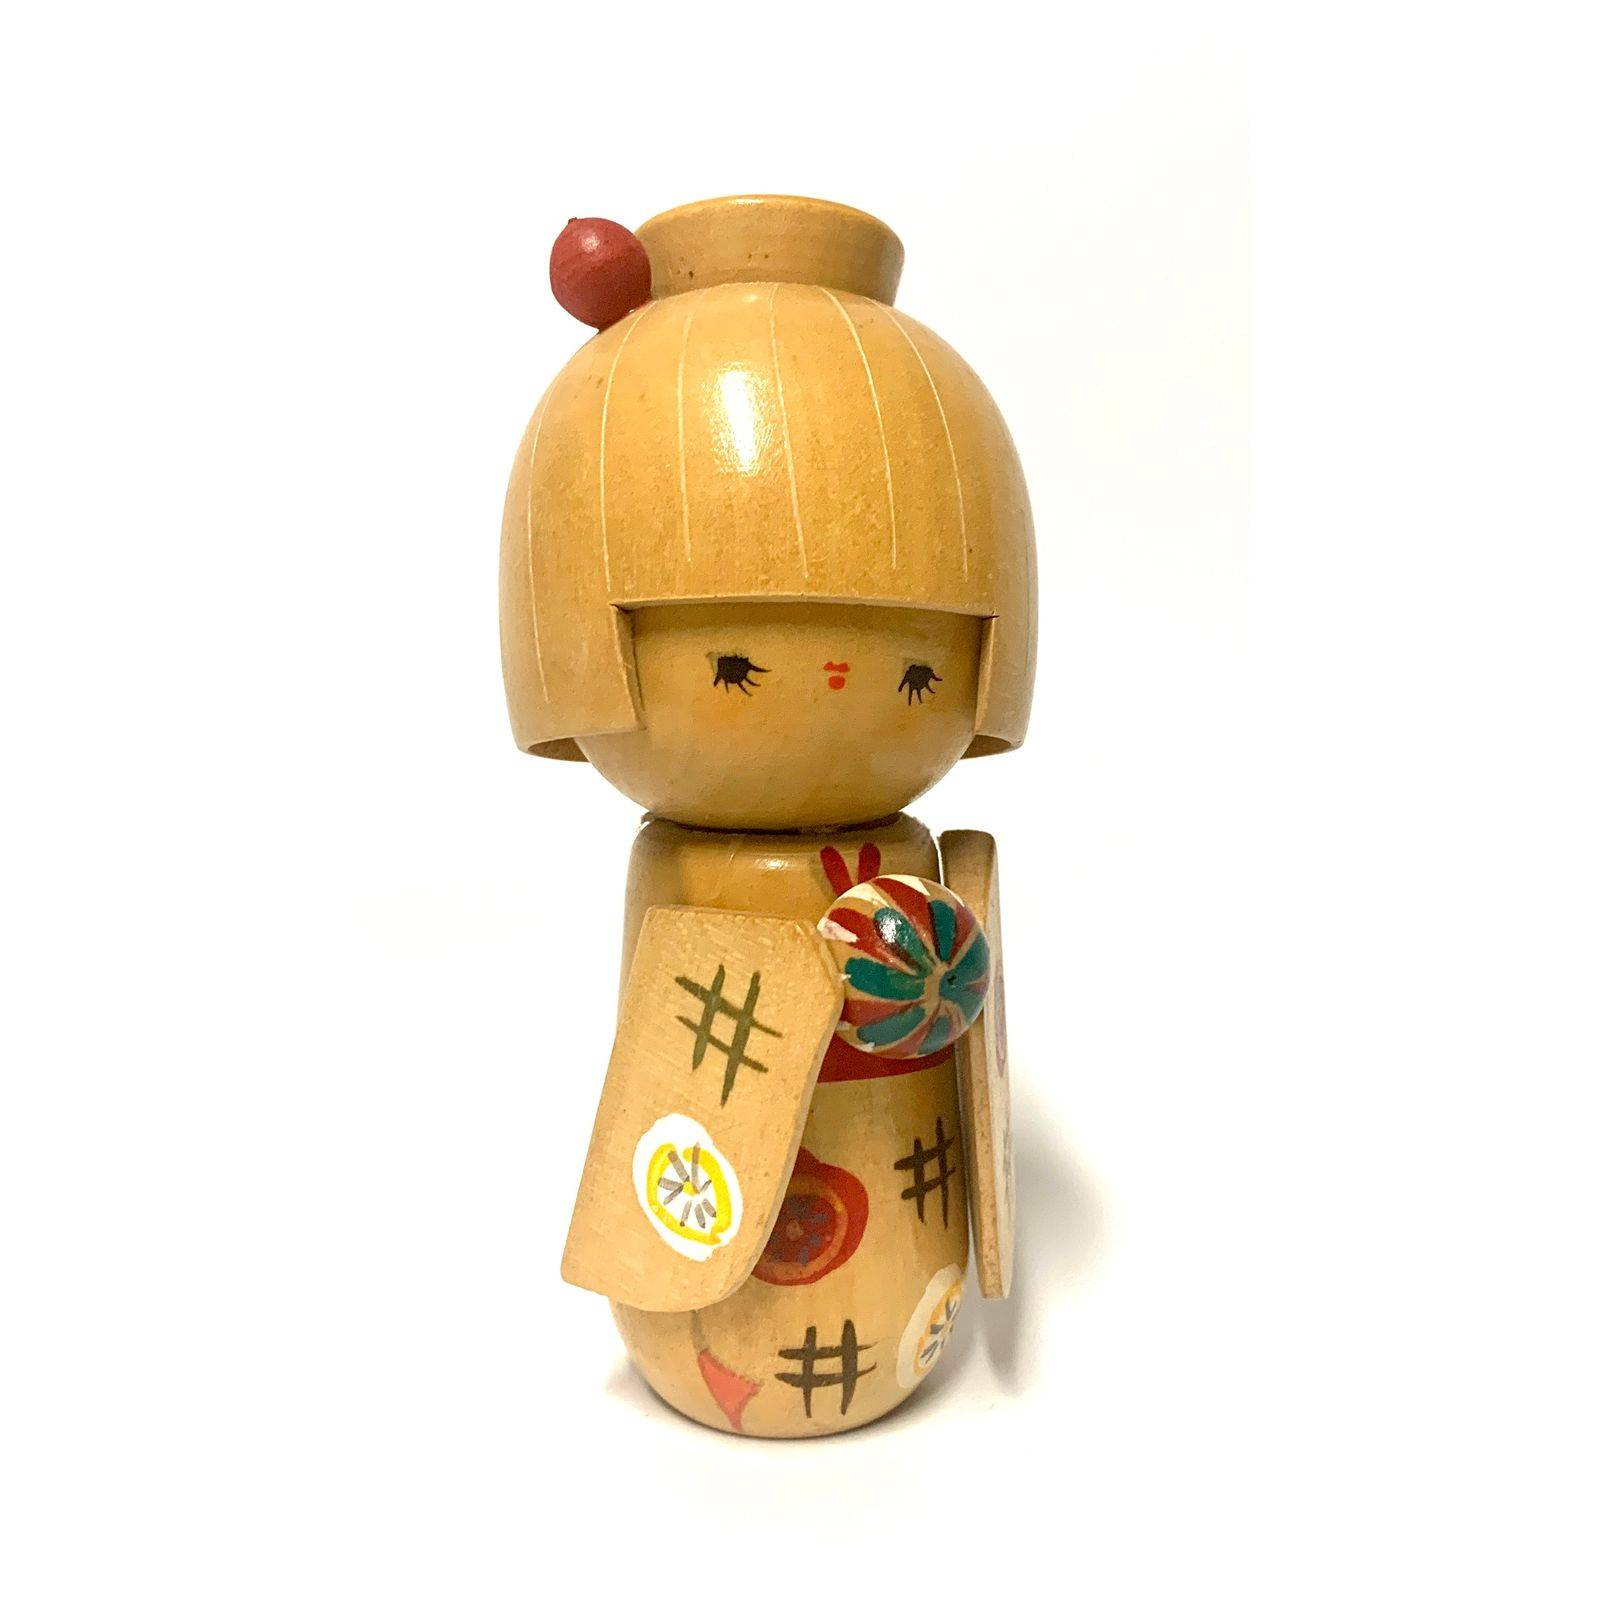 Vintage Japanese Wooden Kokeshi Doll